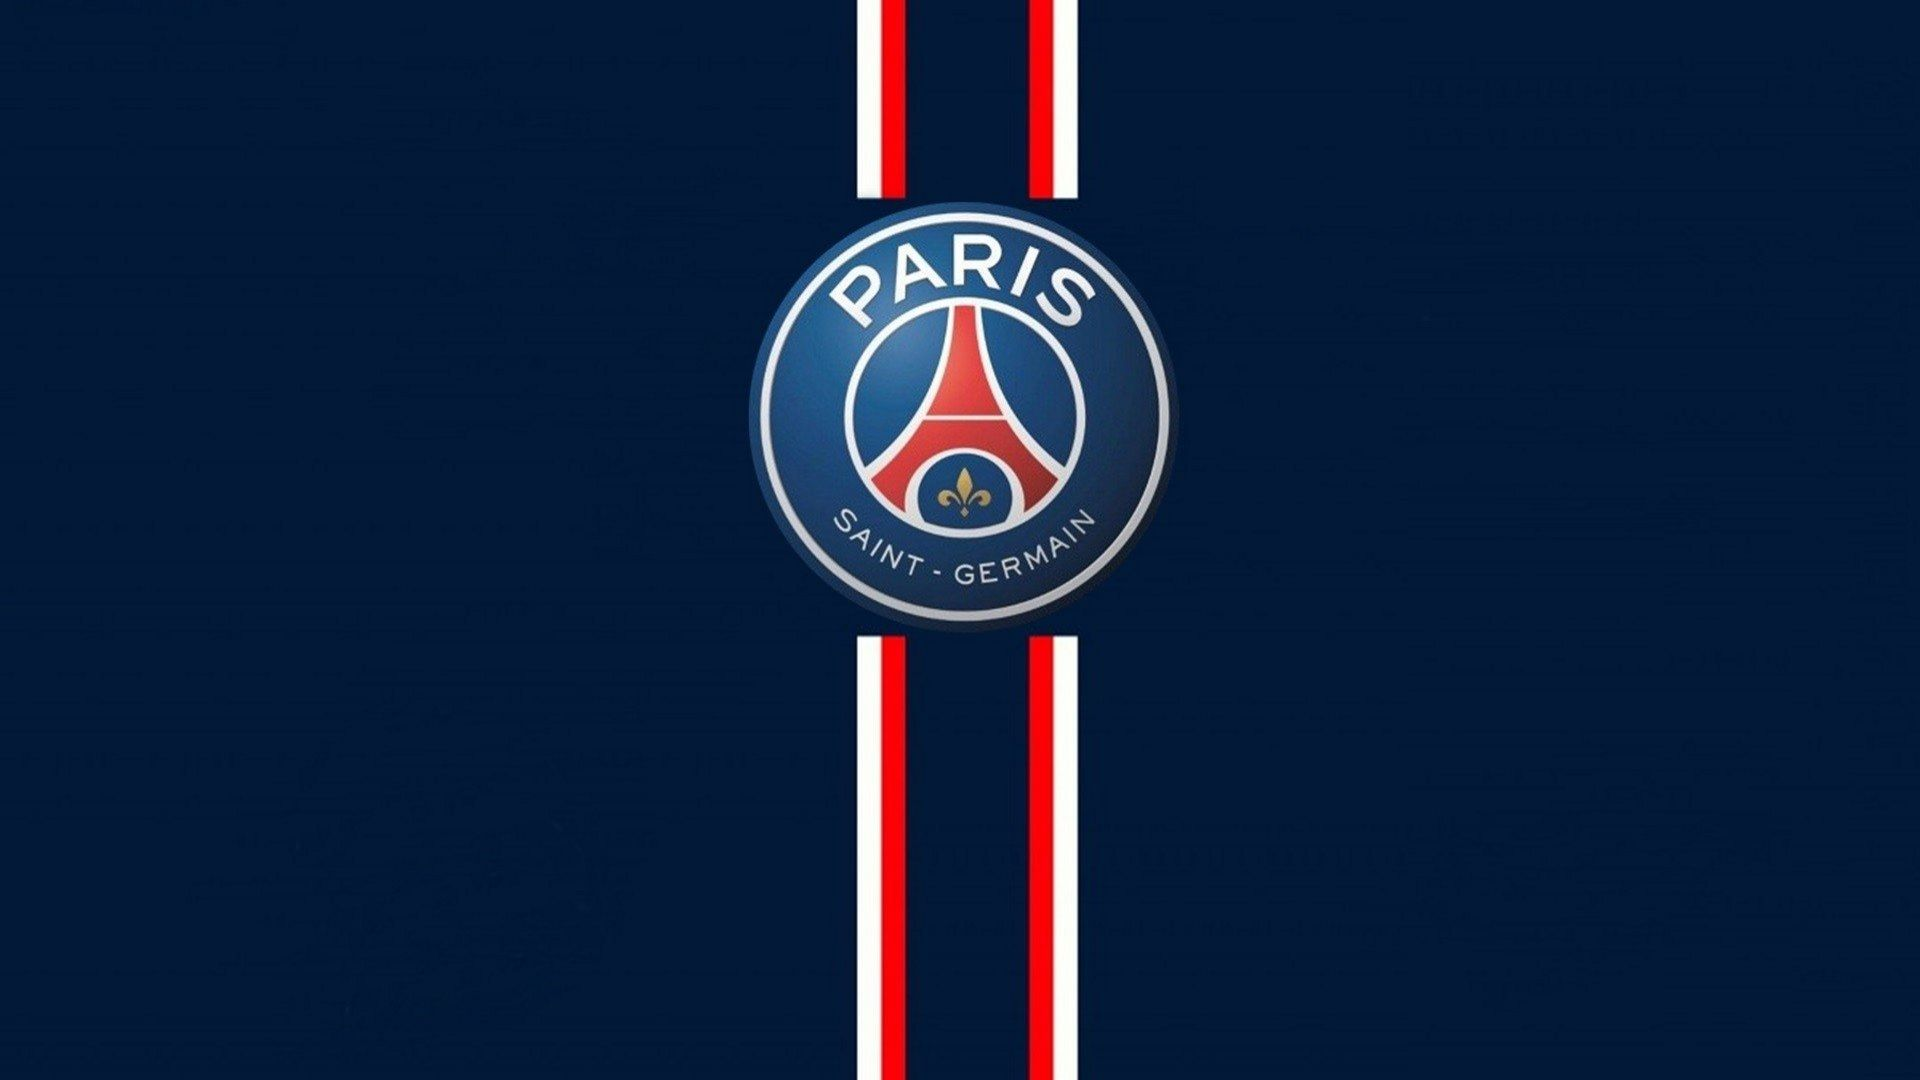 1920x1080 - Paris Saint-Germain F.C. Wallpapers 1